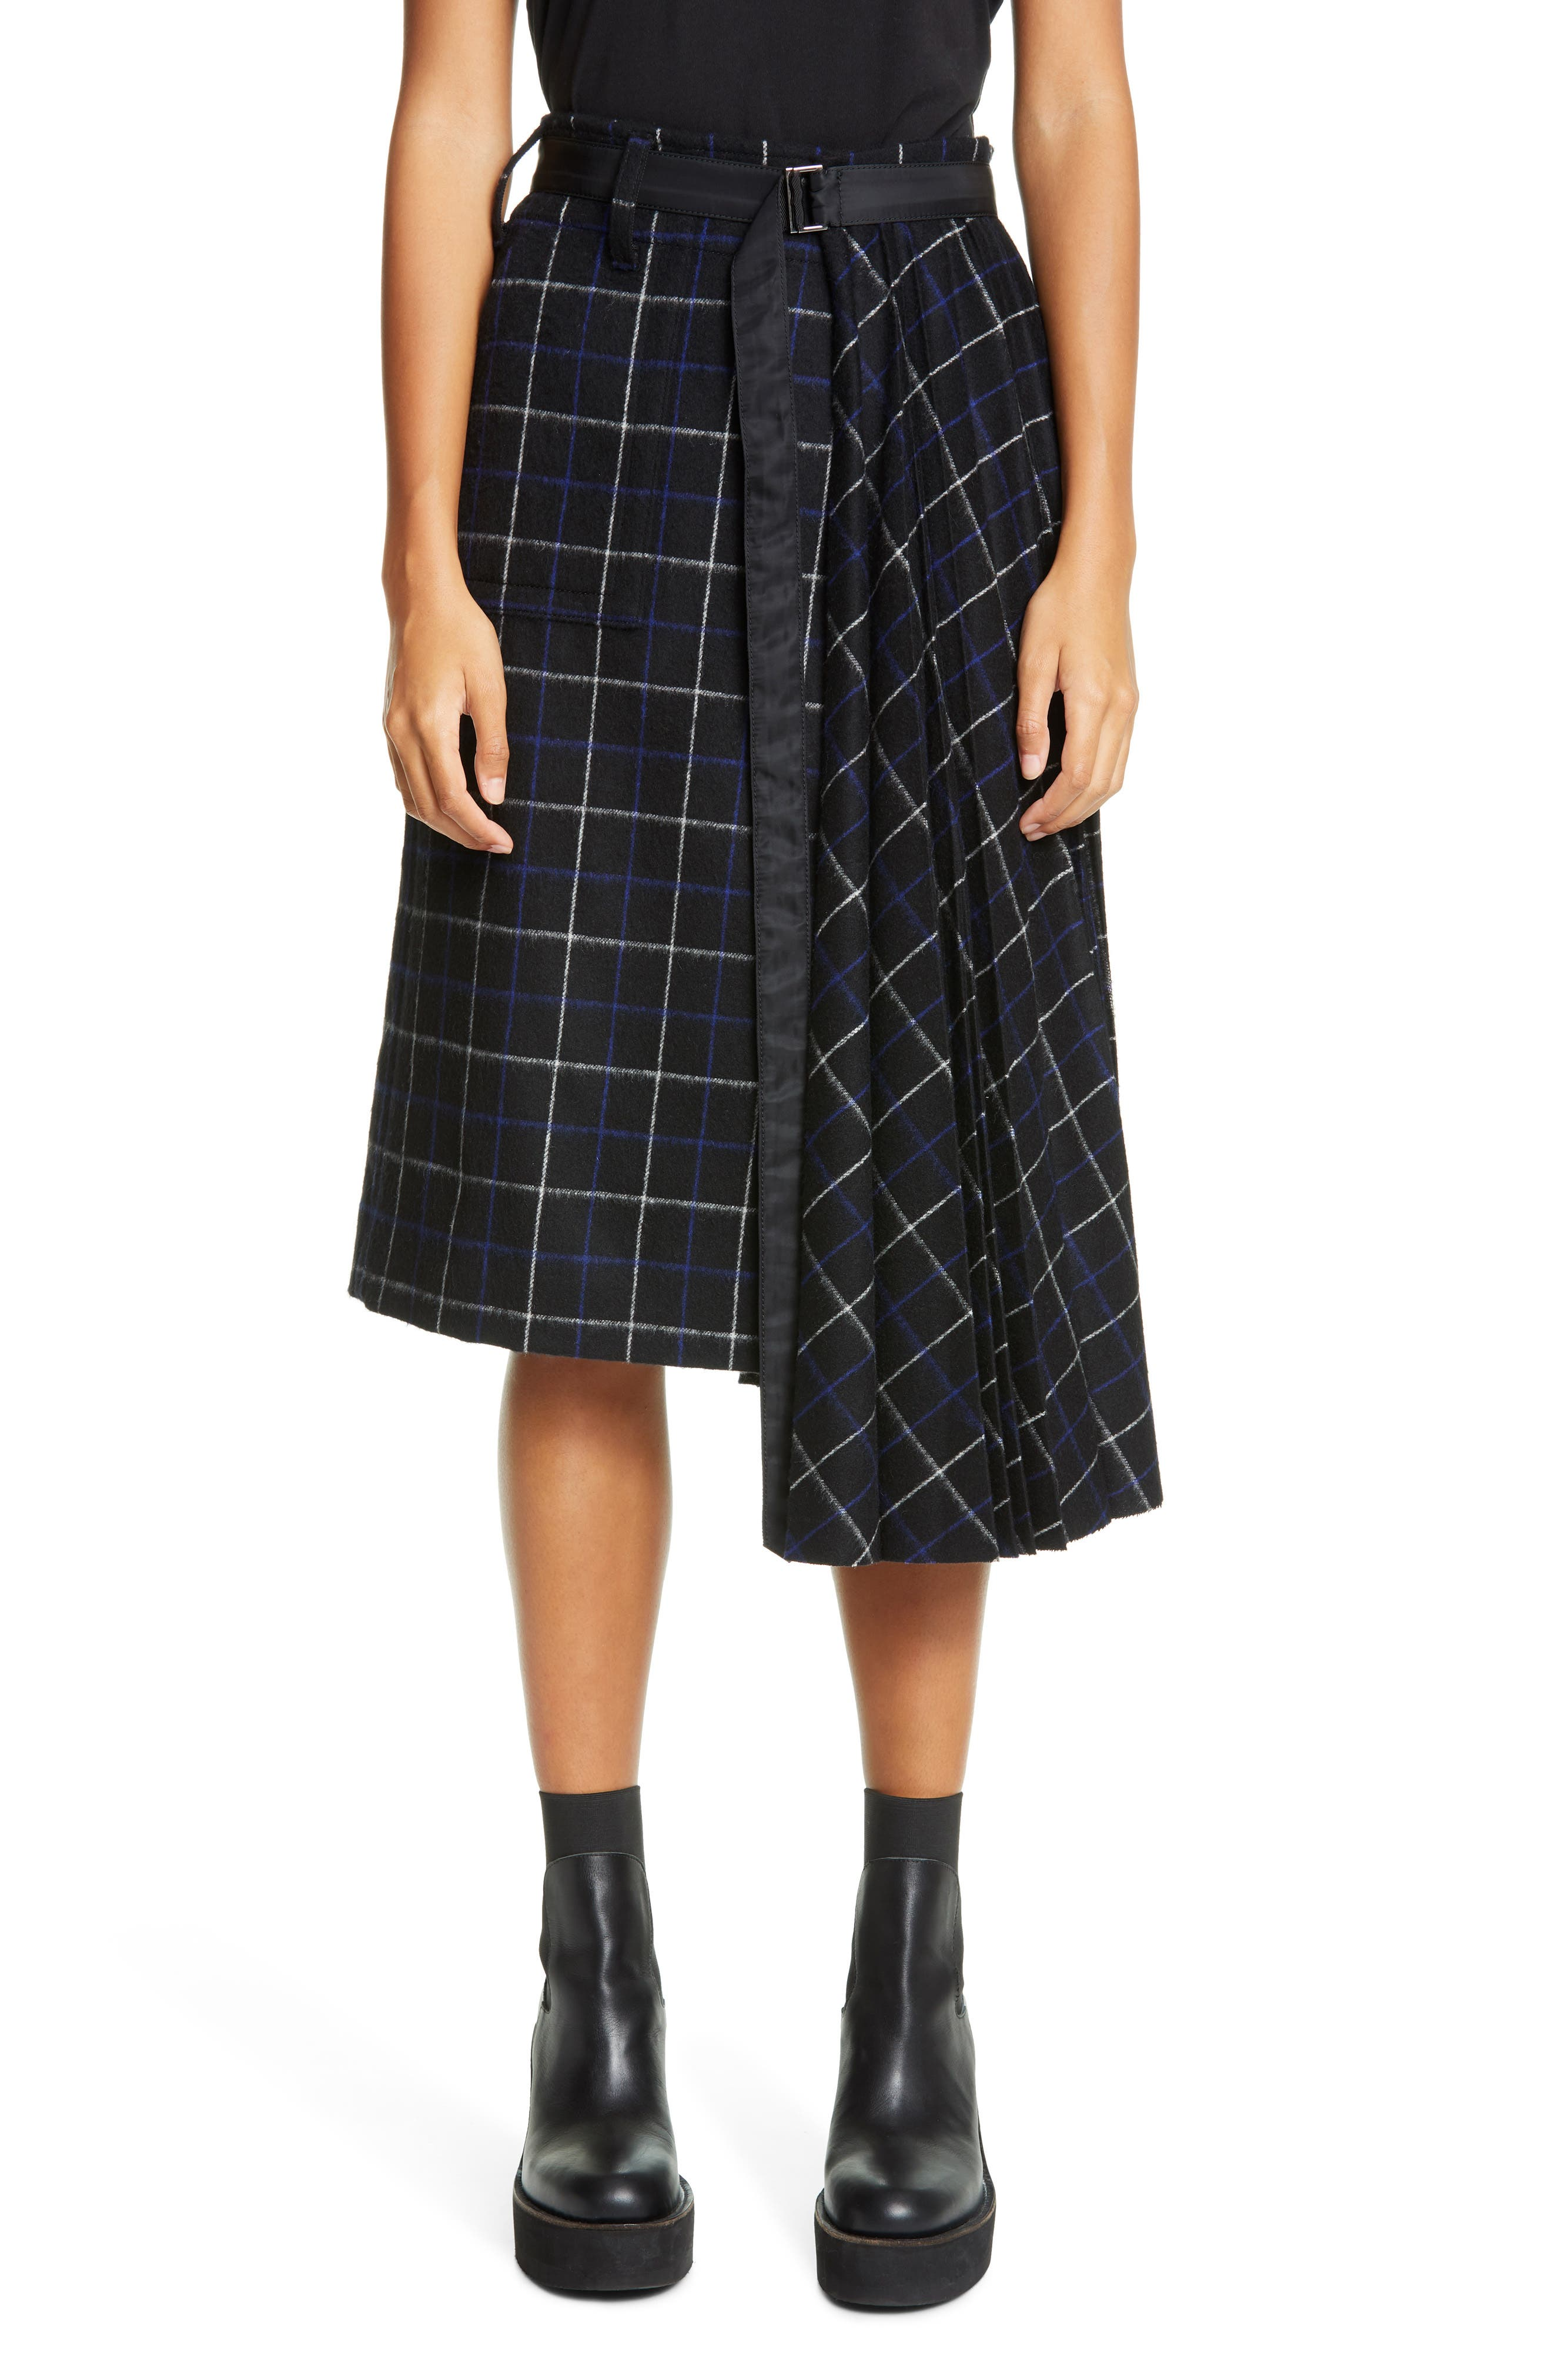 Crisp pleats stream from one end of this plaid skirt cinched tight at the waist with a long, wispy belt, giving this schoolgirl-inspired piece some sporty ease. Style Name: Sacai Asymmetrical Pleated Windowpane Wool Blend Skirt. Style Number: 6086127. Available in stores.